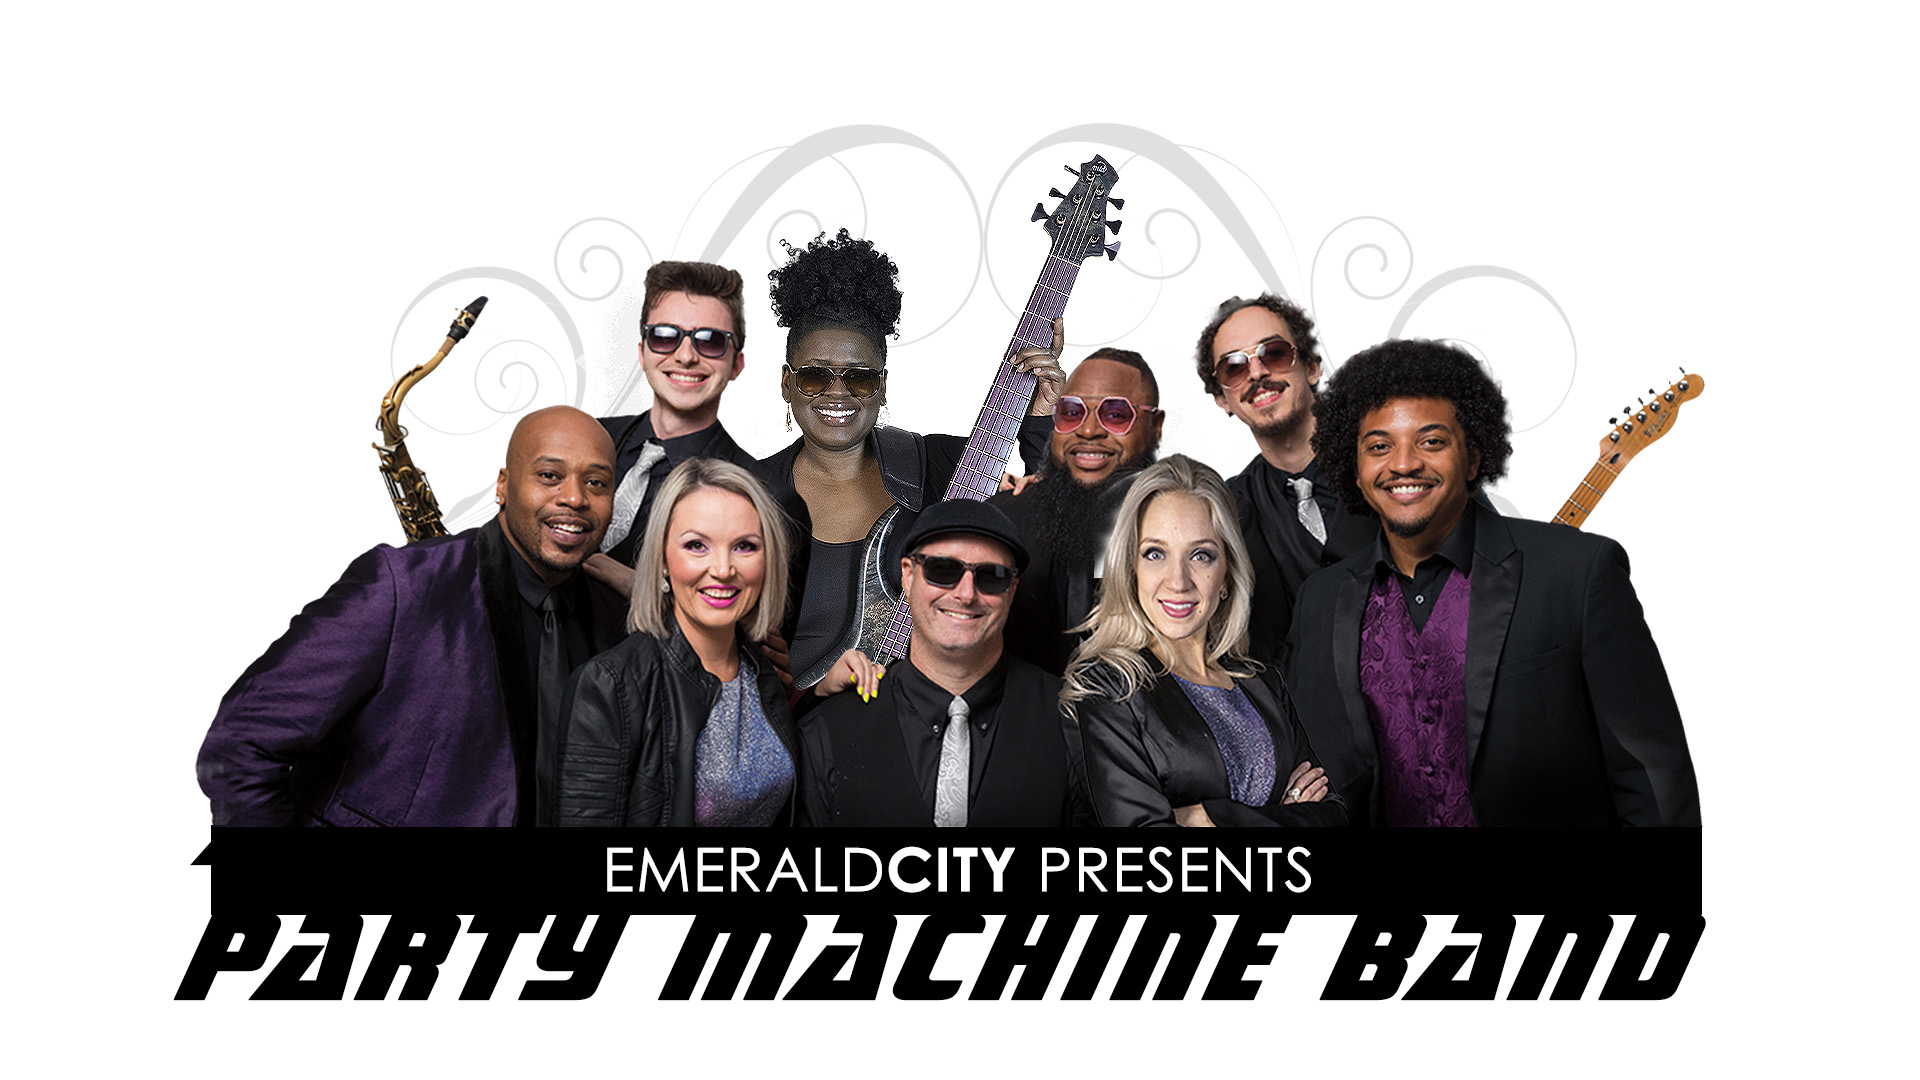 Party Machine Band - Dallas TX - one of the best live party bands for weddings and events